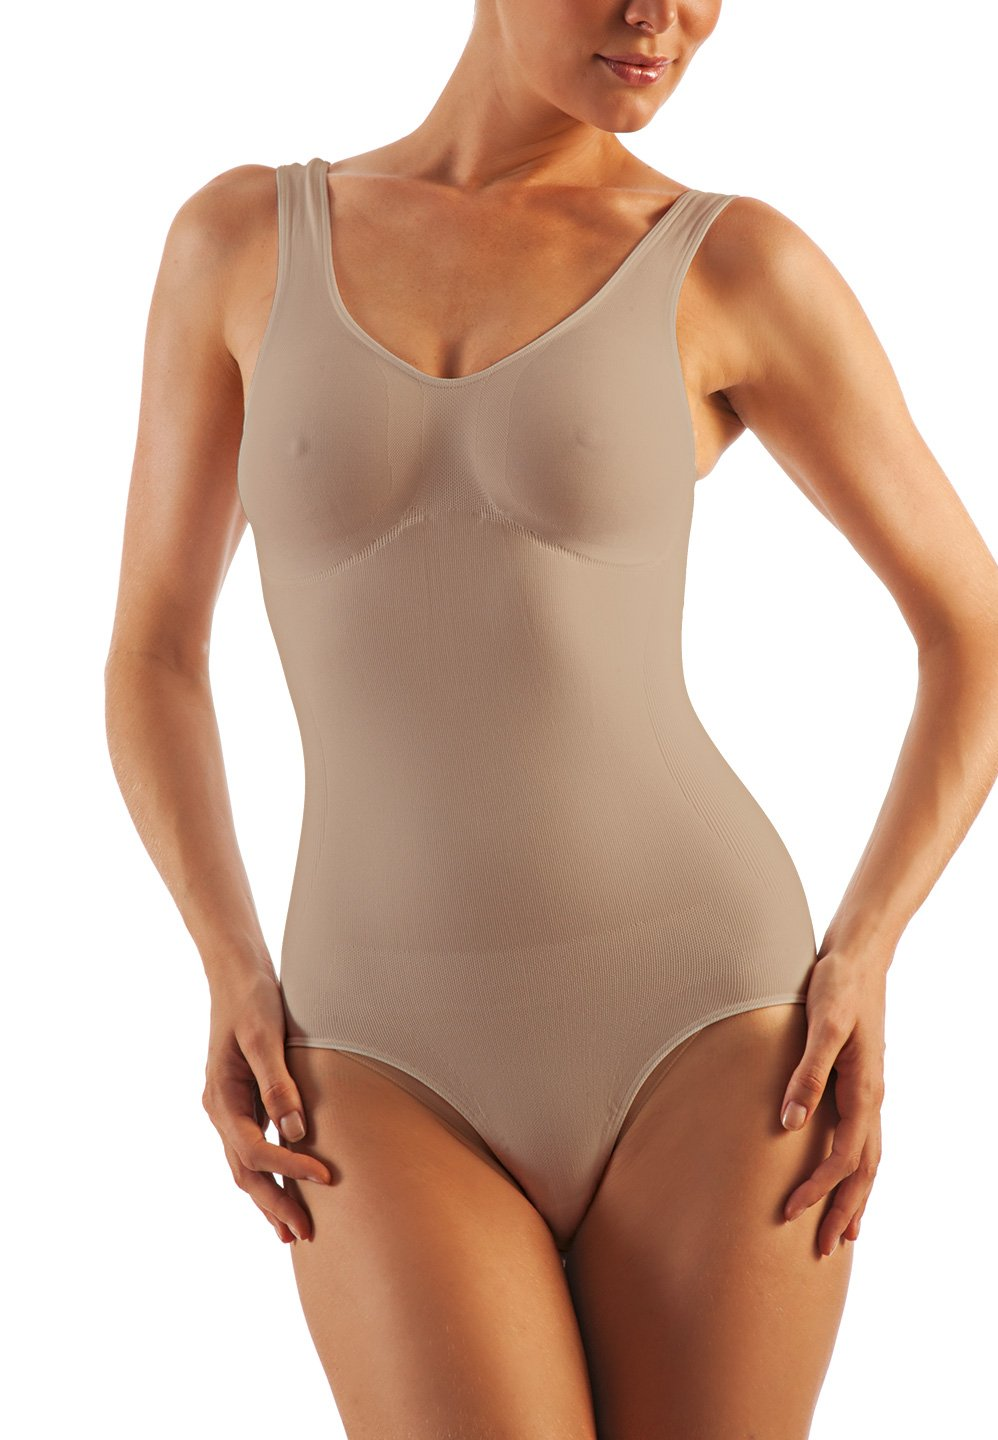 Alpha Medical Compression Shaper Bodysuit. Microfiber Shape Wear. For Slimmer Look & After Cosmetic Surgery. Fine Italian Made Quality & Style (XX-Large Beige)